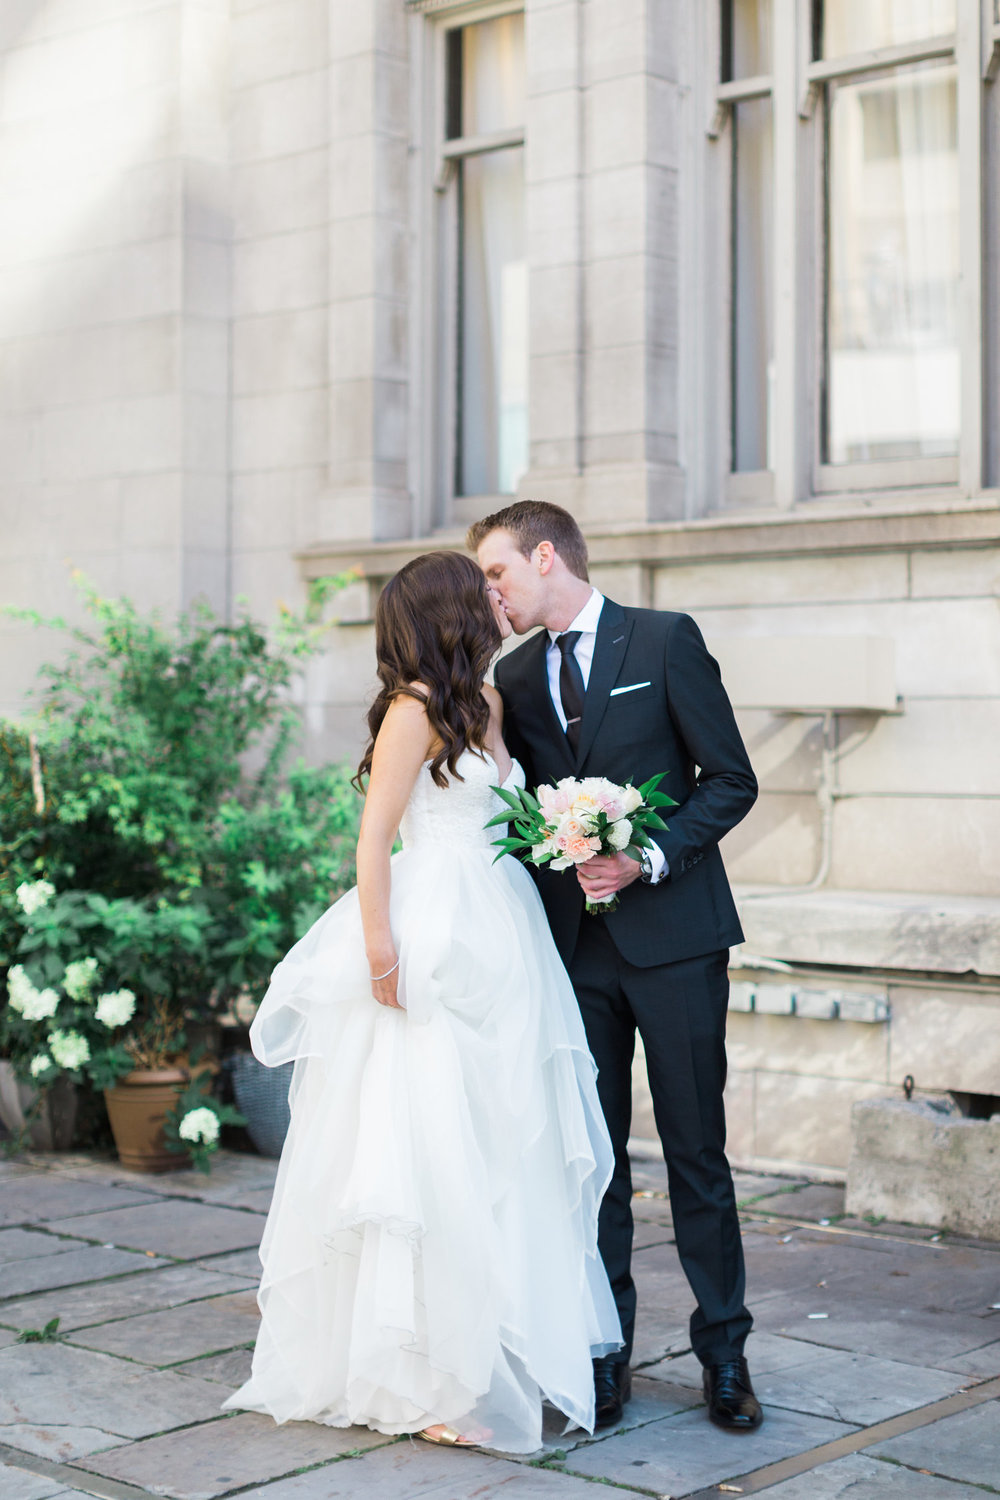 Toronto+Fine+Art+Photographer+-+Yorkville+Wedding+-+Bride+&+Groom+Portraits-81.jpg